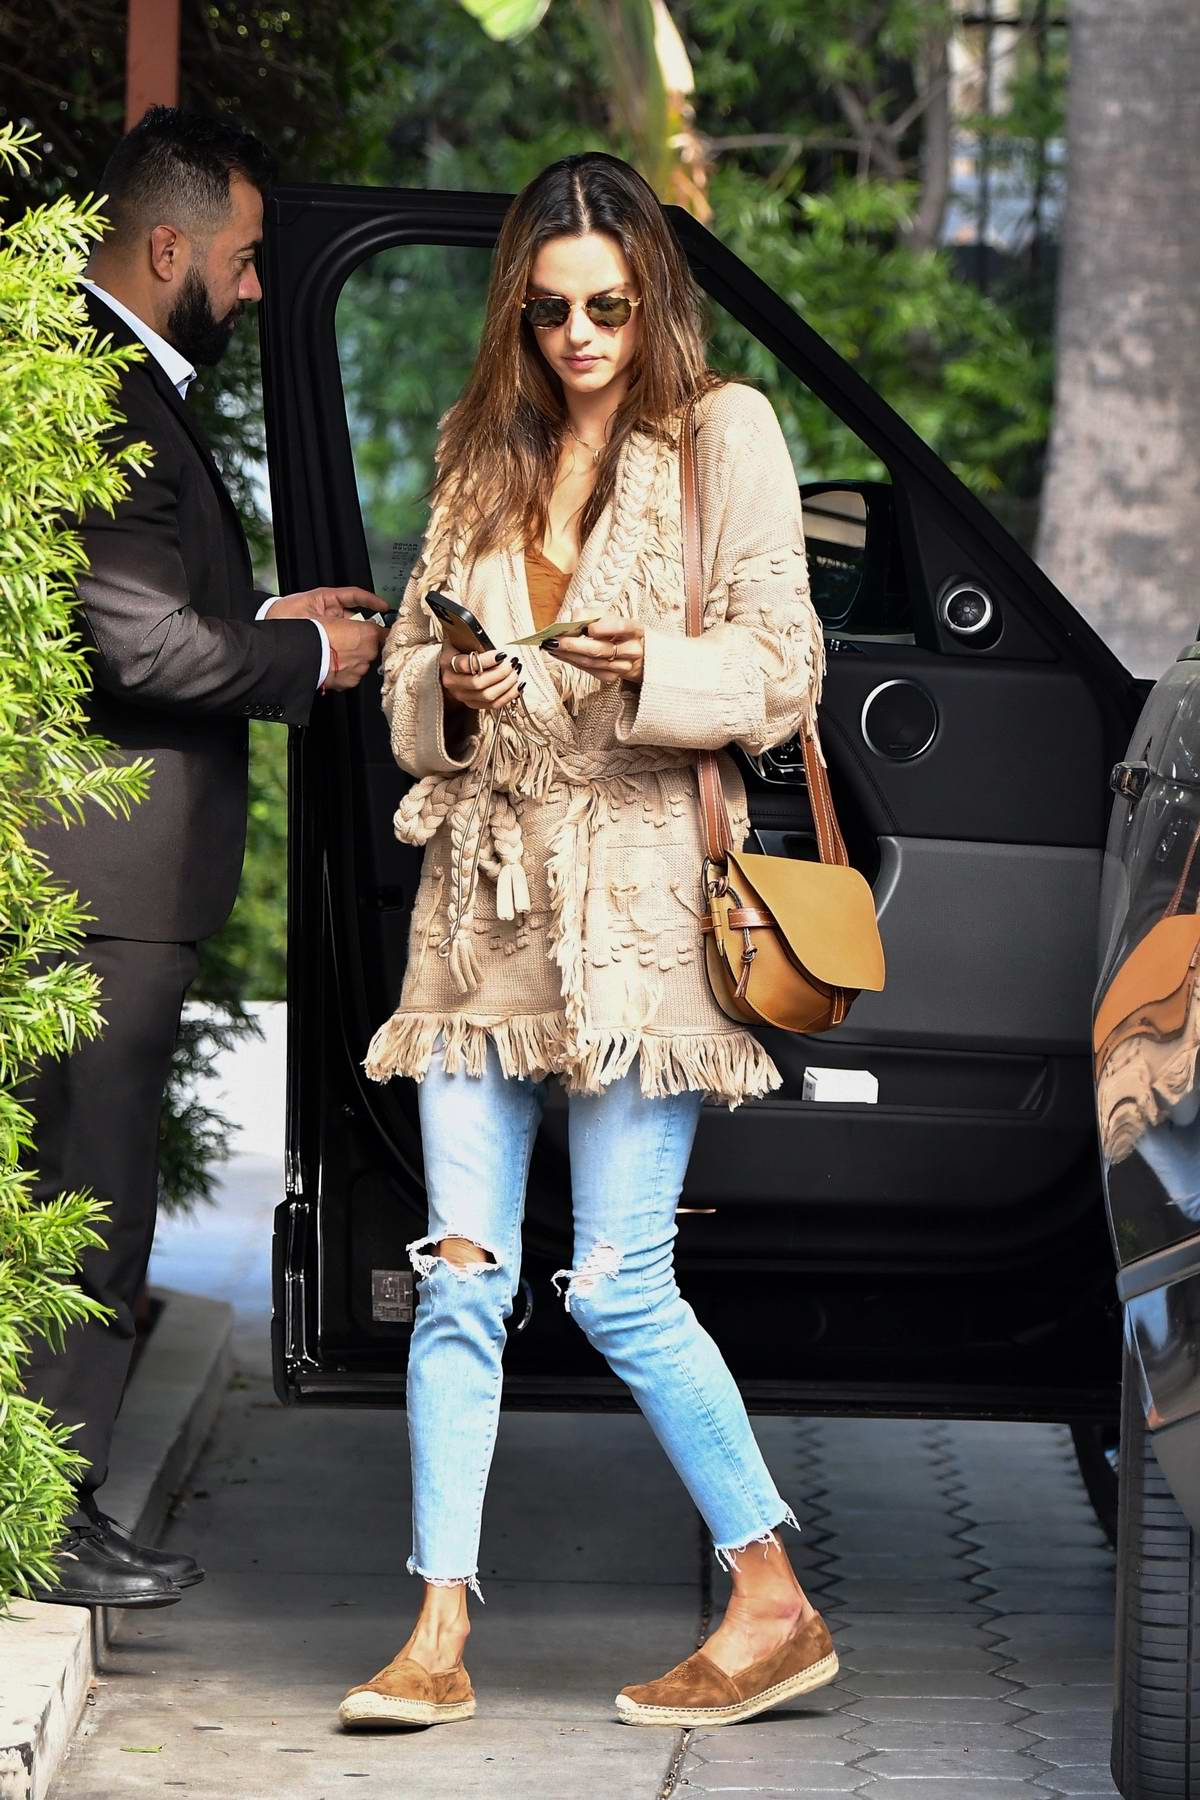 Alessandra Ambrosio looks stylish in a beige knitted coat as she arrives for a meeting in Beverly Hills, California